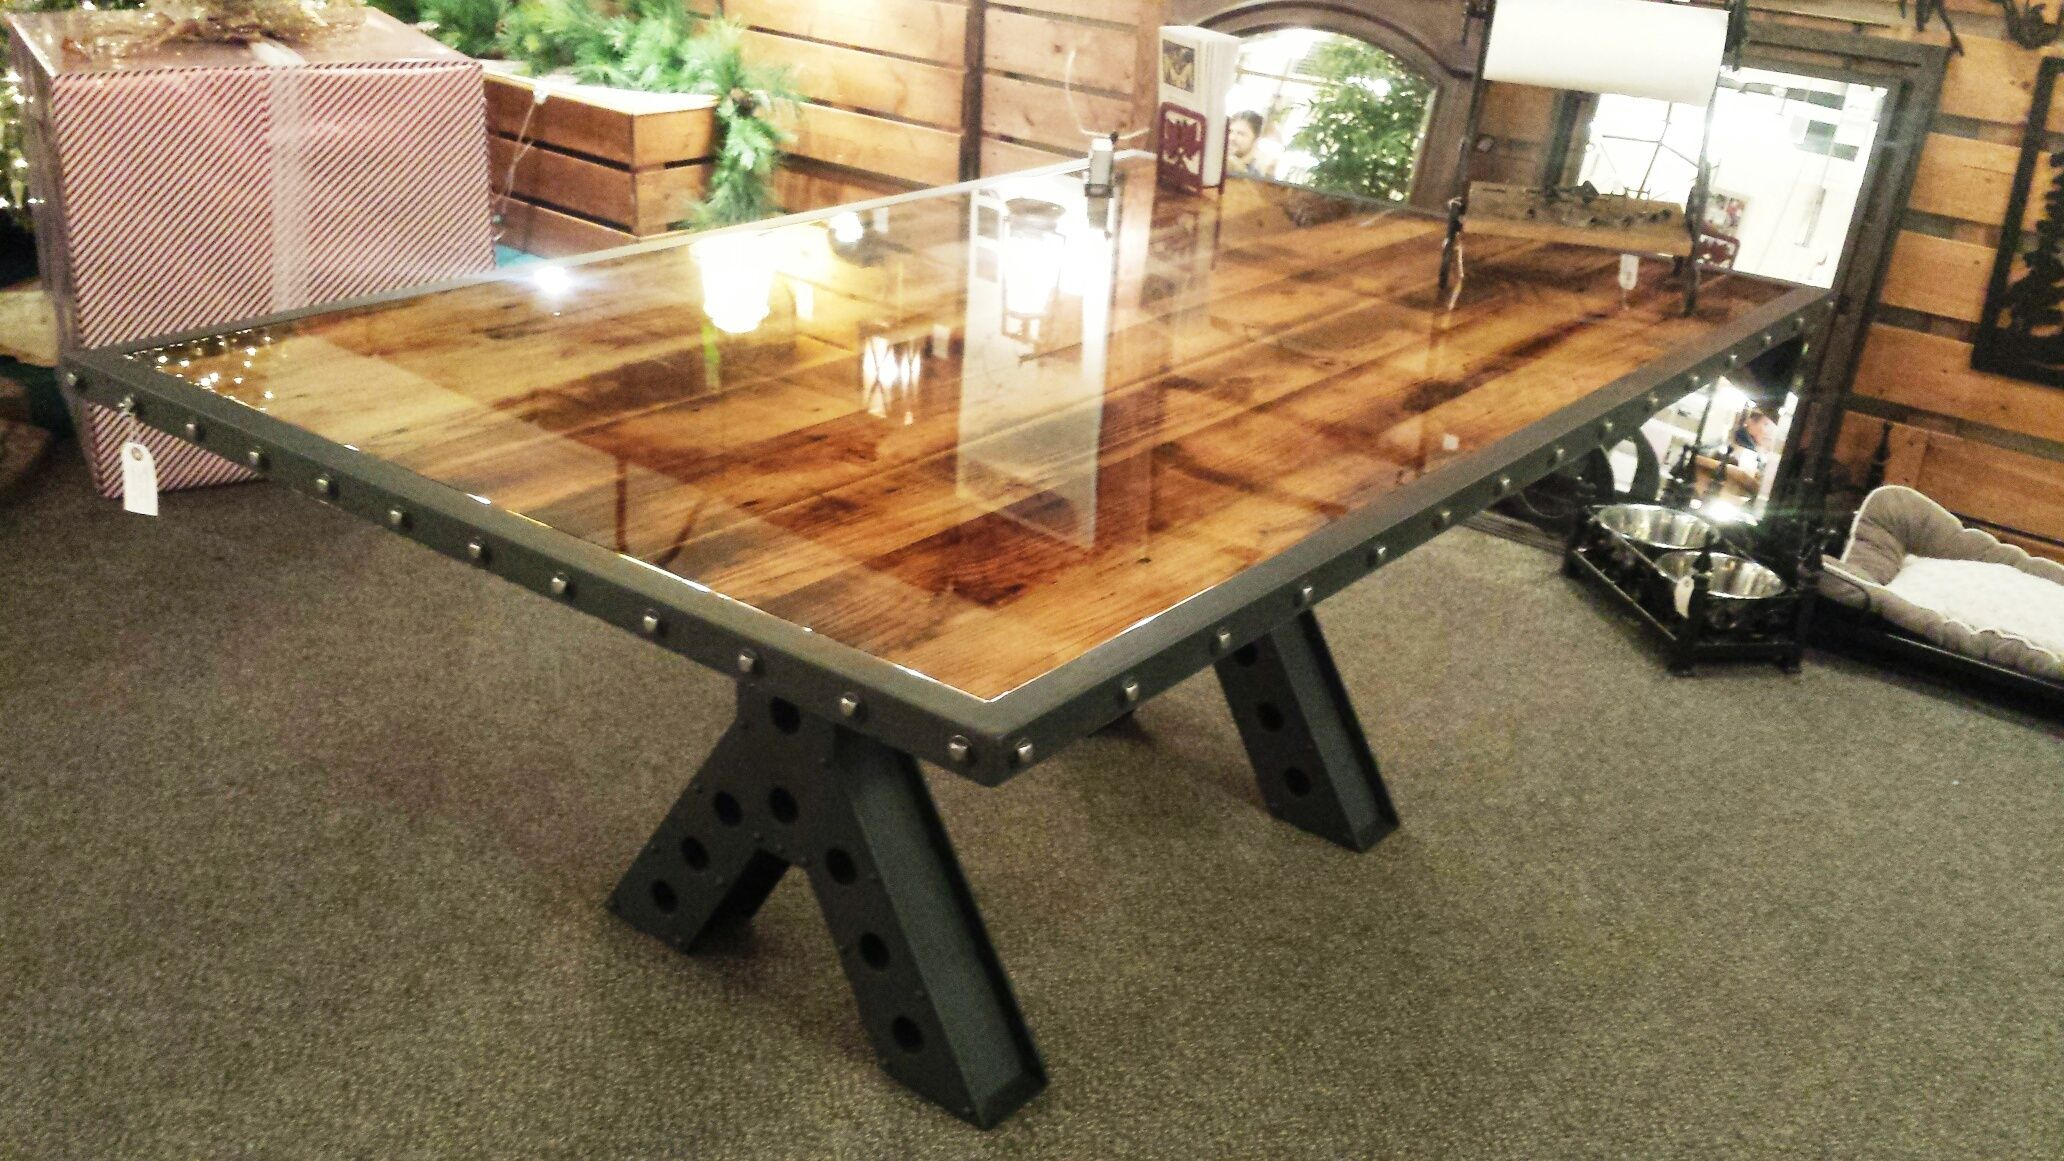 Buy A Handmade Modern Industrial Rustic Foot Dining Table - 6 foot conference table